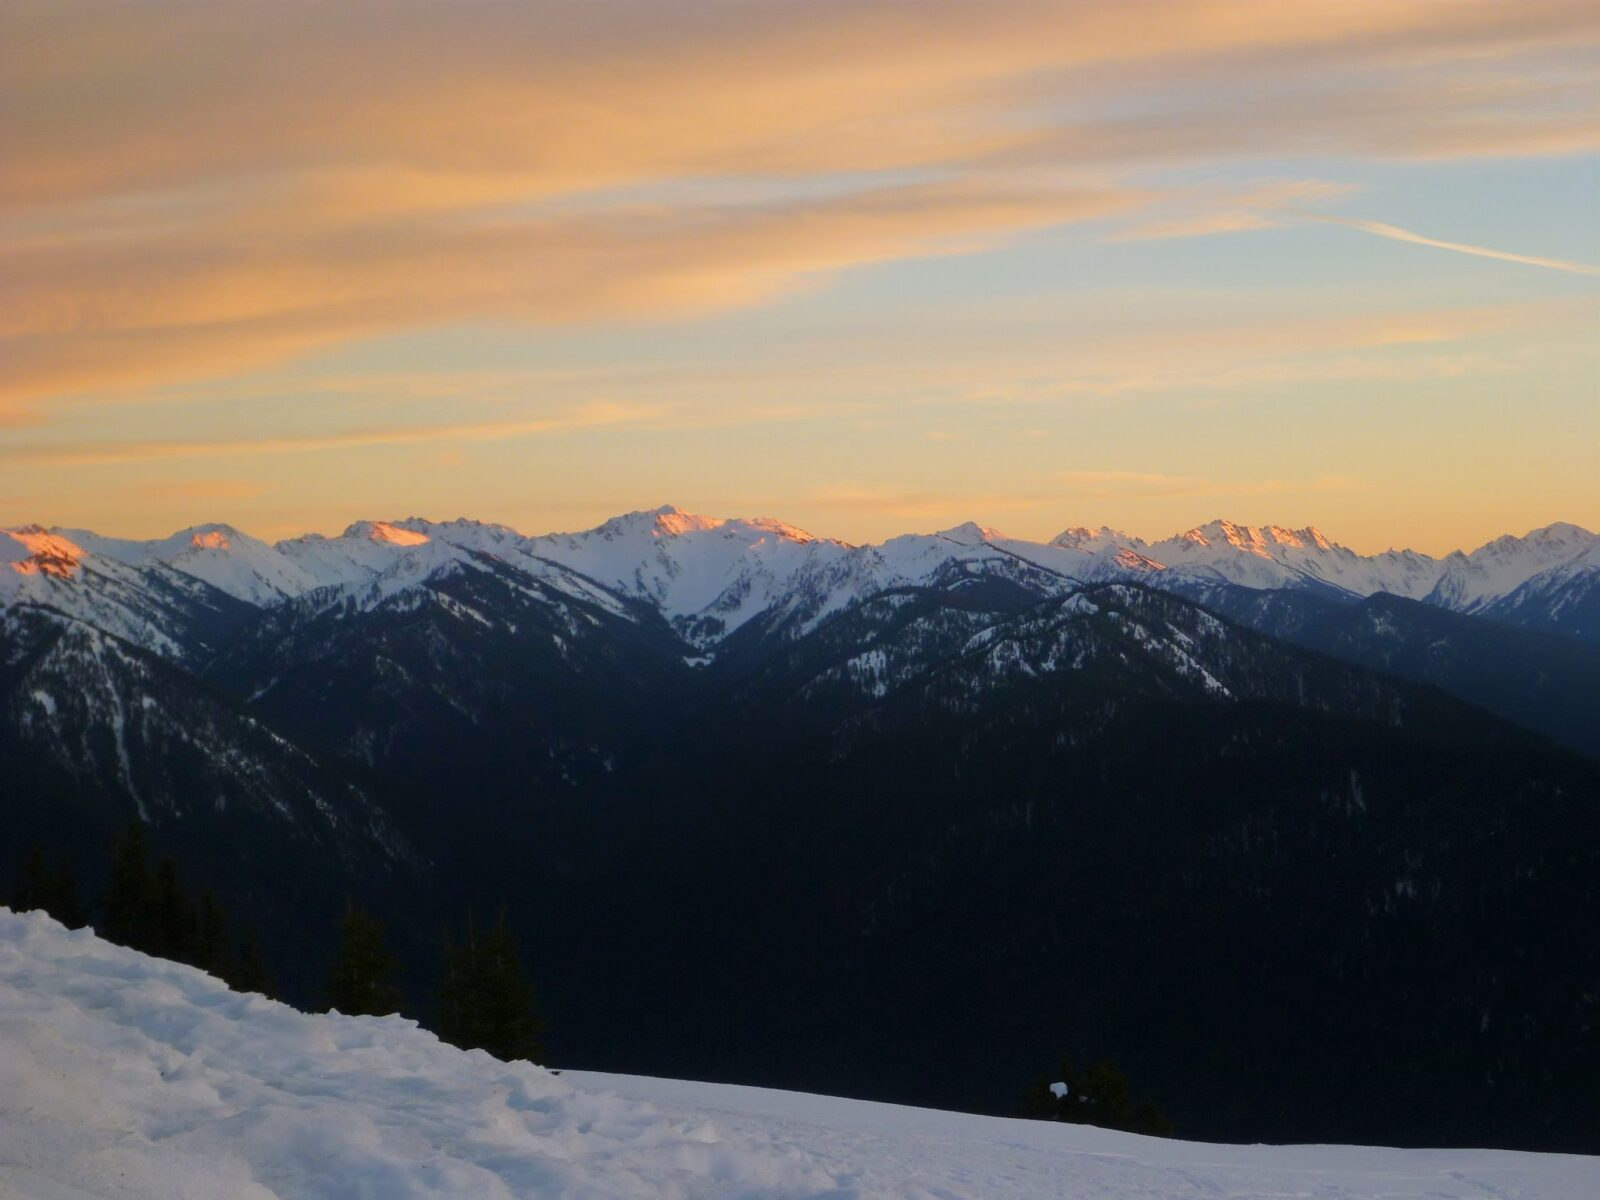 Last bit of pink sunset lingers on the mountains of from Hurricane Ridge, a favorite day trip from Seattle